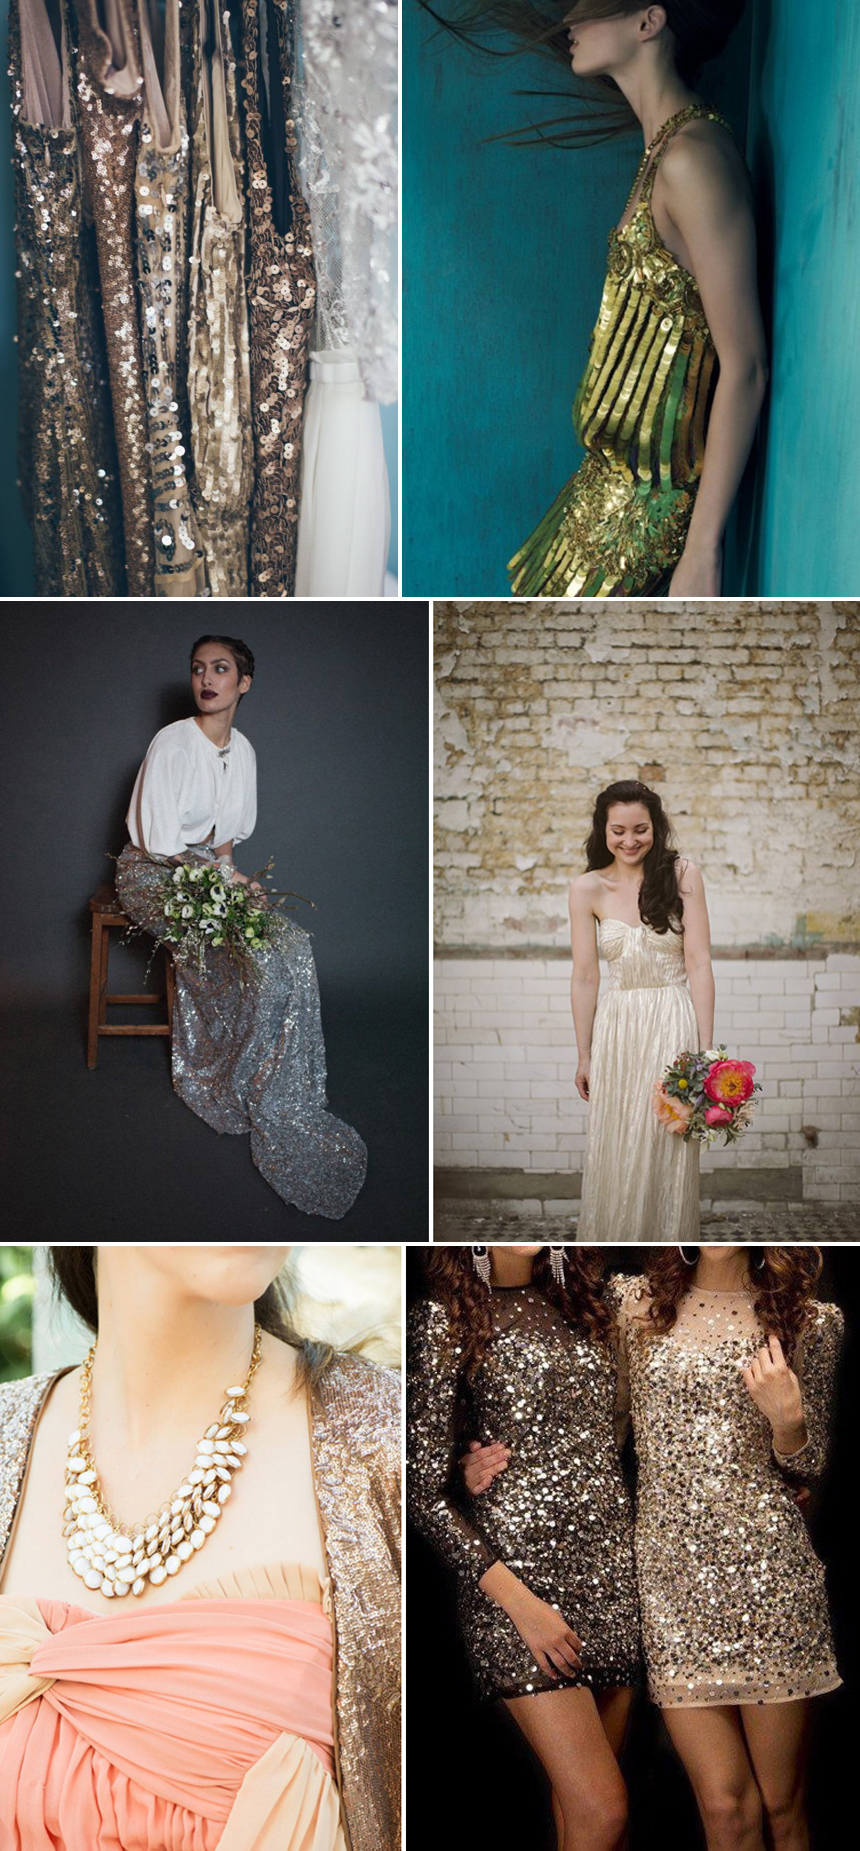 Coco Wedding Venues - Coco Colour Palette - Wedding Inspiration - Embellished Love - Bridesmaid Fashion.